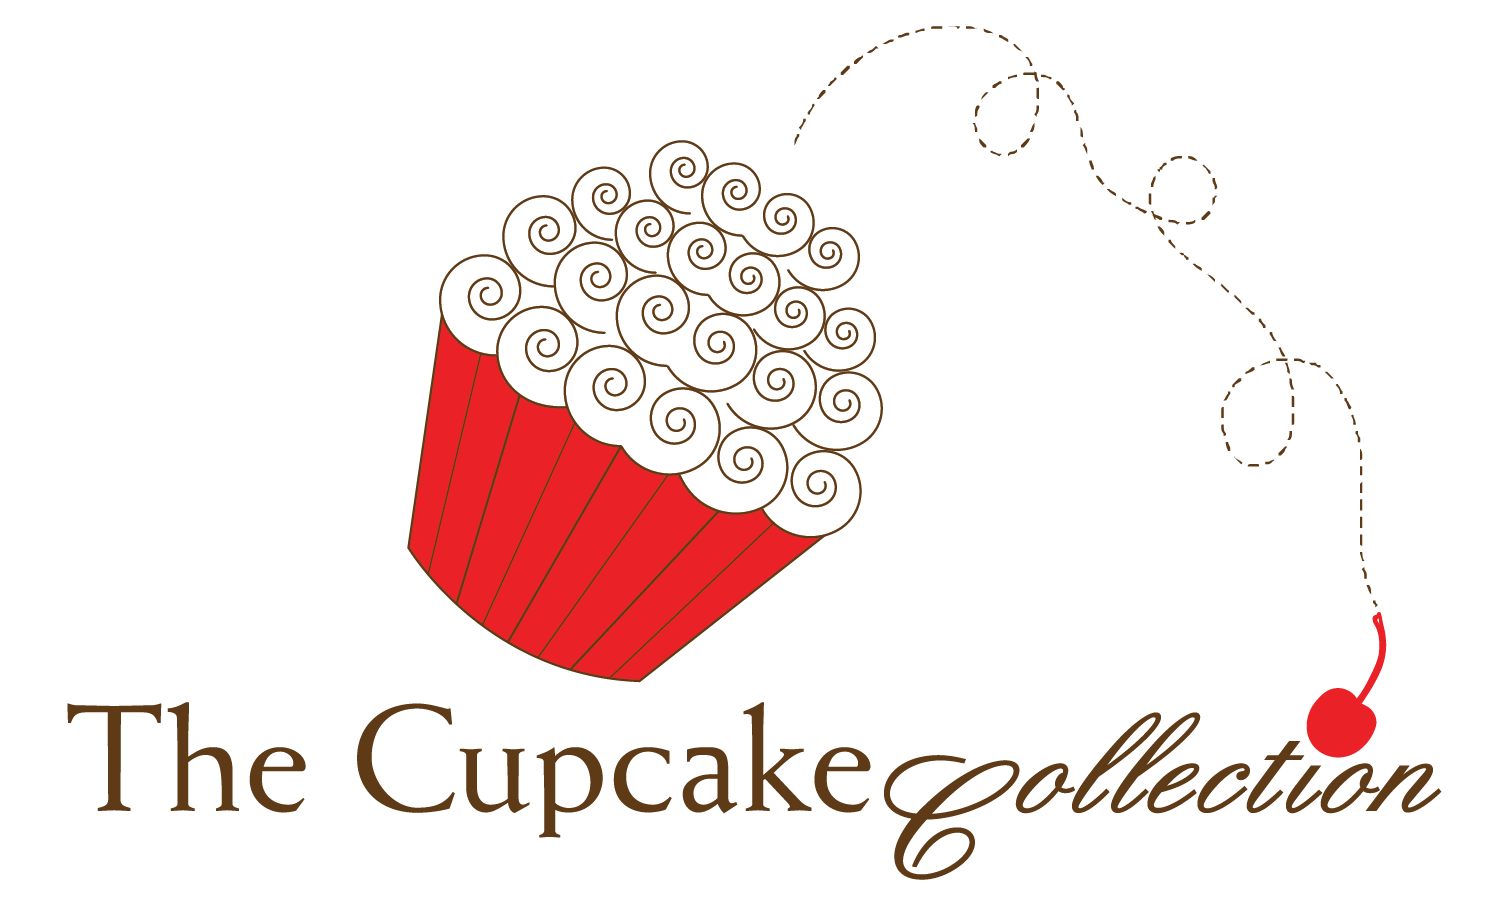 TheCupcakeCollectionLogobrownletters_CreditTheCupcakeCollection.png